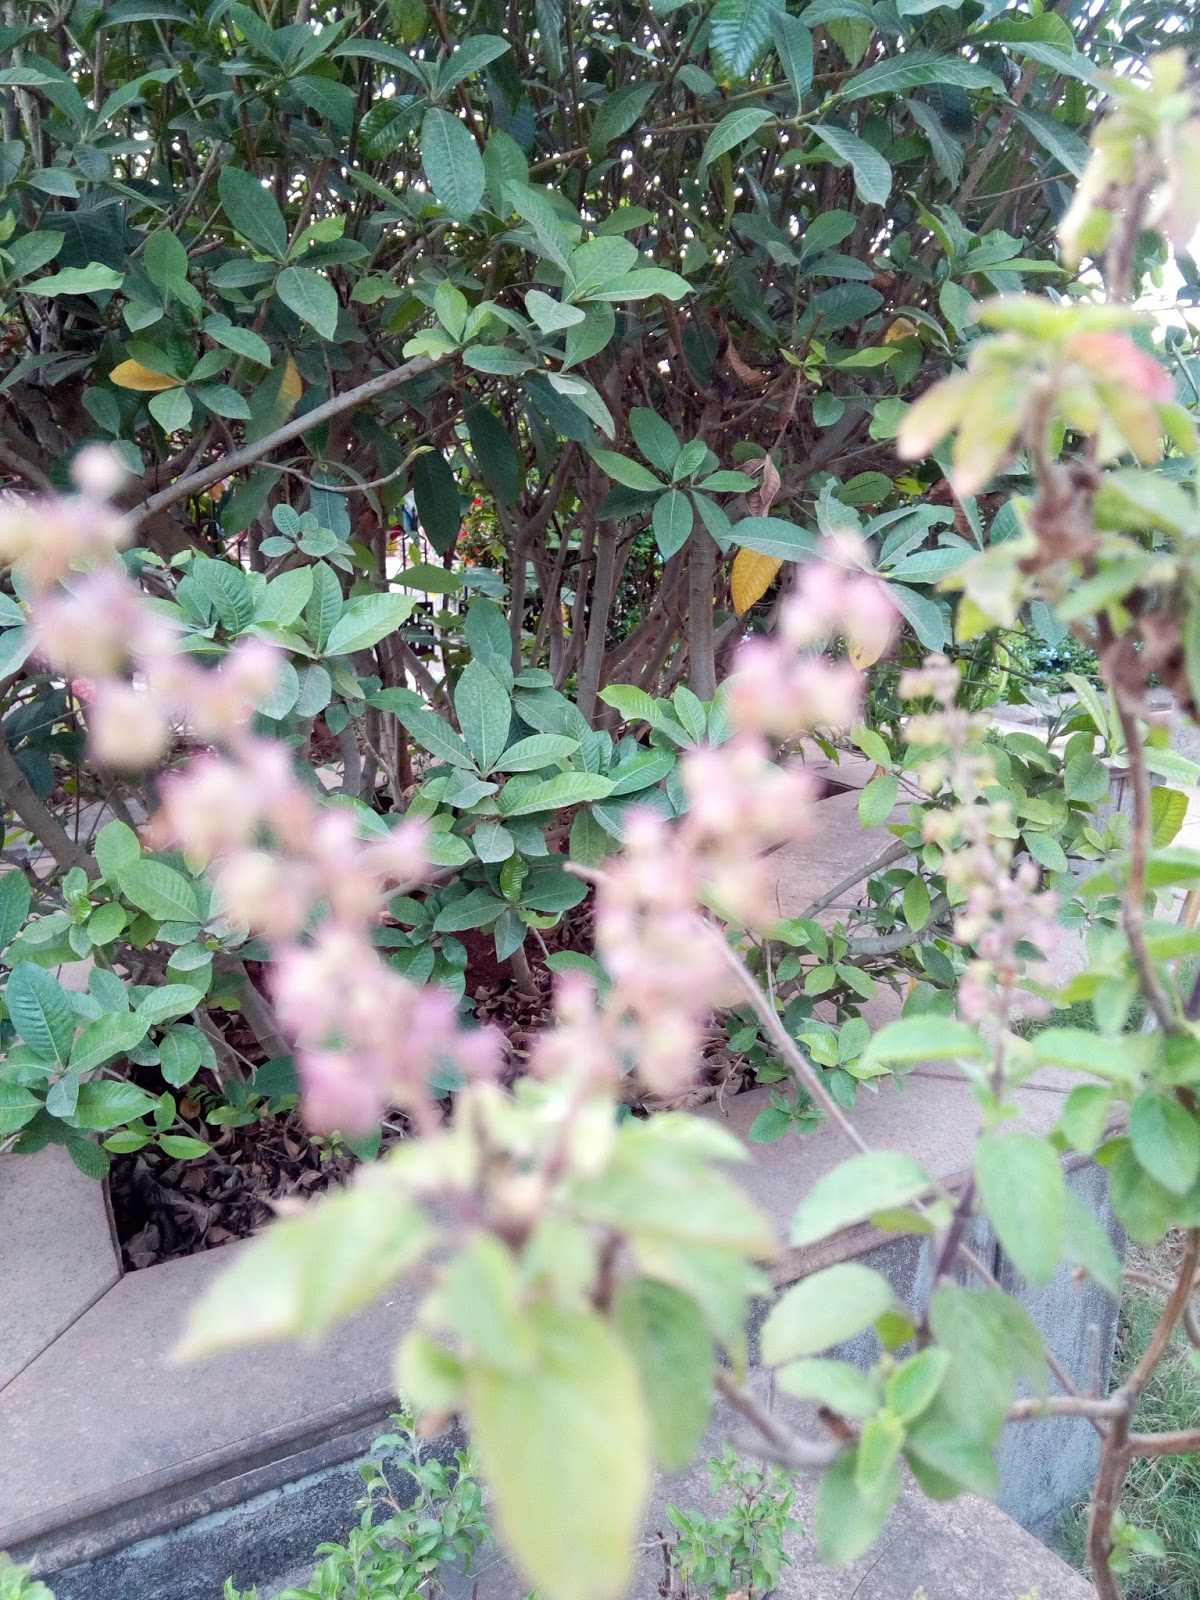 garden care simplified how to grow tulsi holy basil plants simple tricks for growing tulsi plants. Black Bedroom Furniture Sets. Home Design Ideas